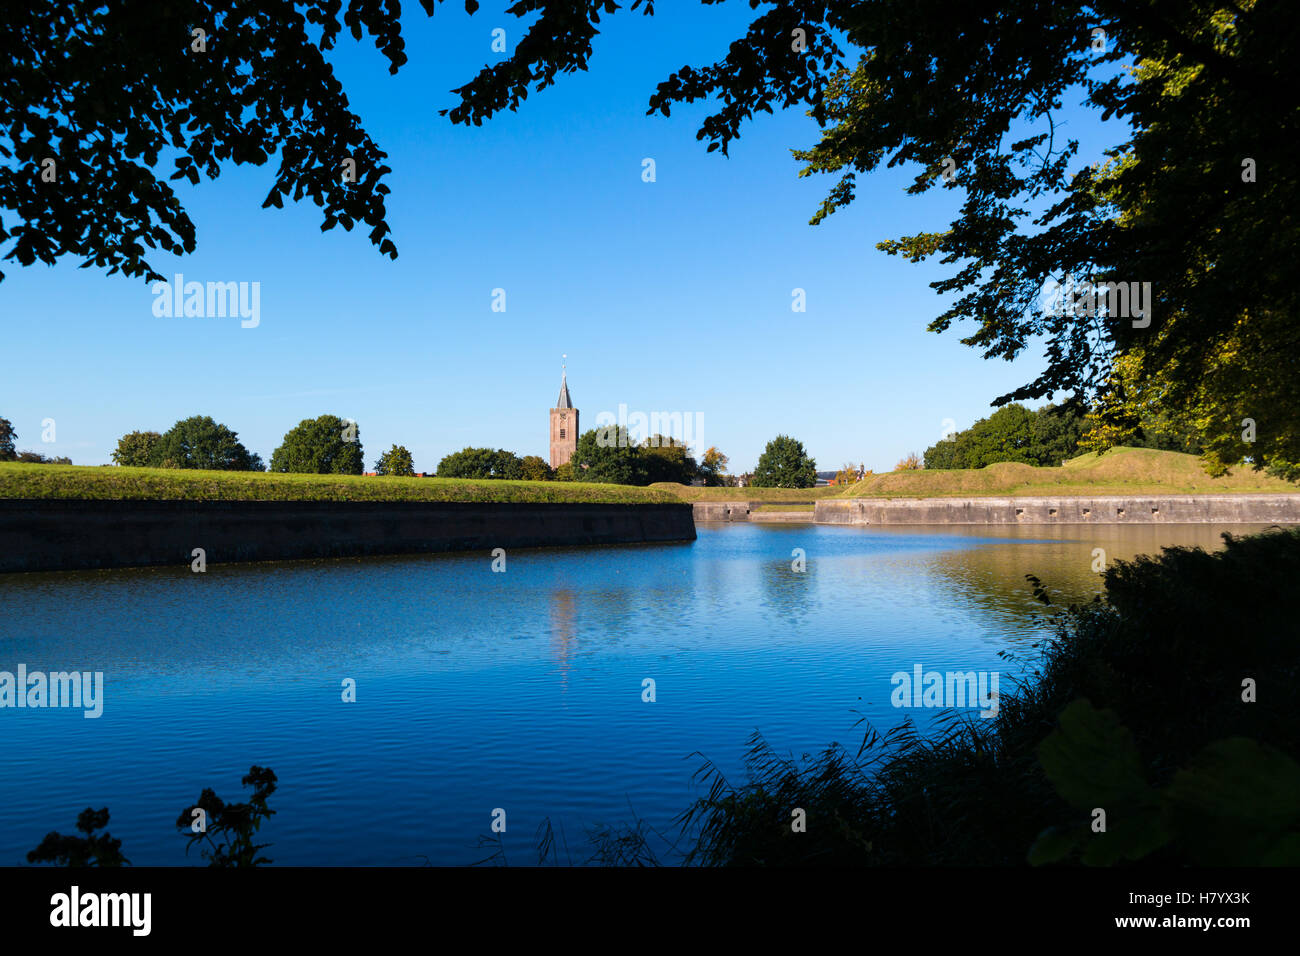 Church tower and rampart with bastion Promers of fortified town of Naarden, North Holland, Netherlands - Stock Image